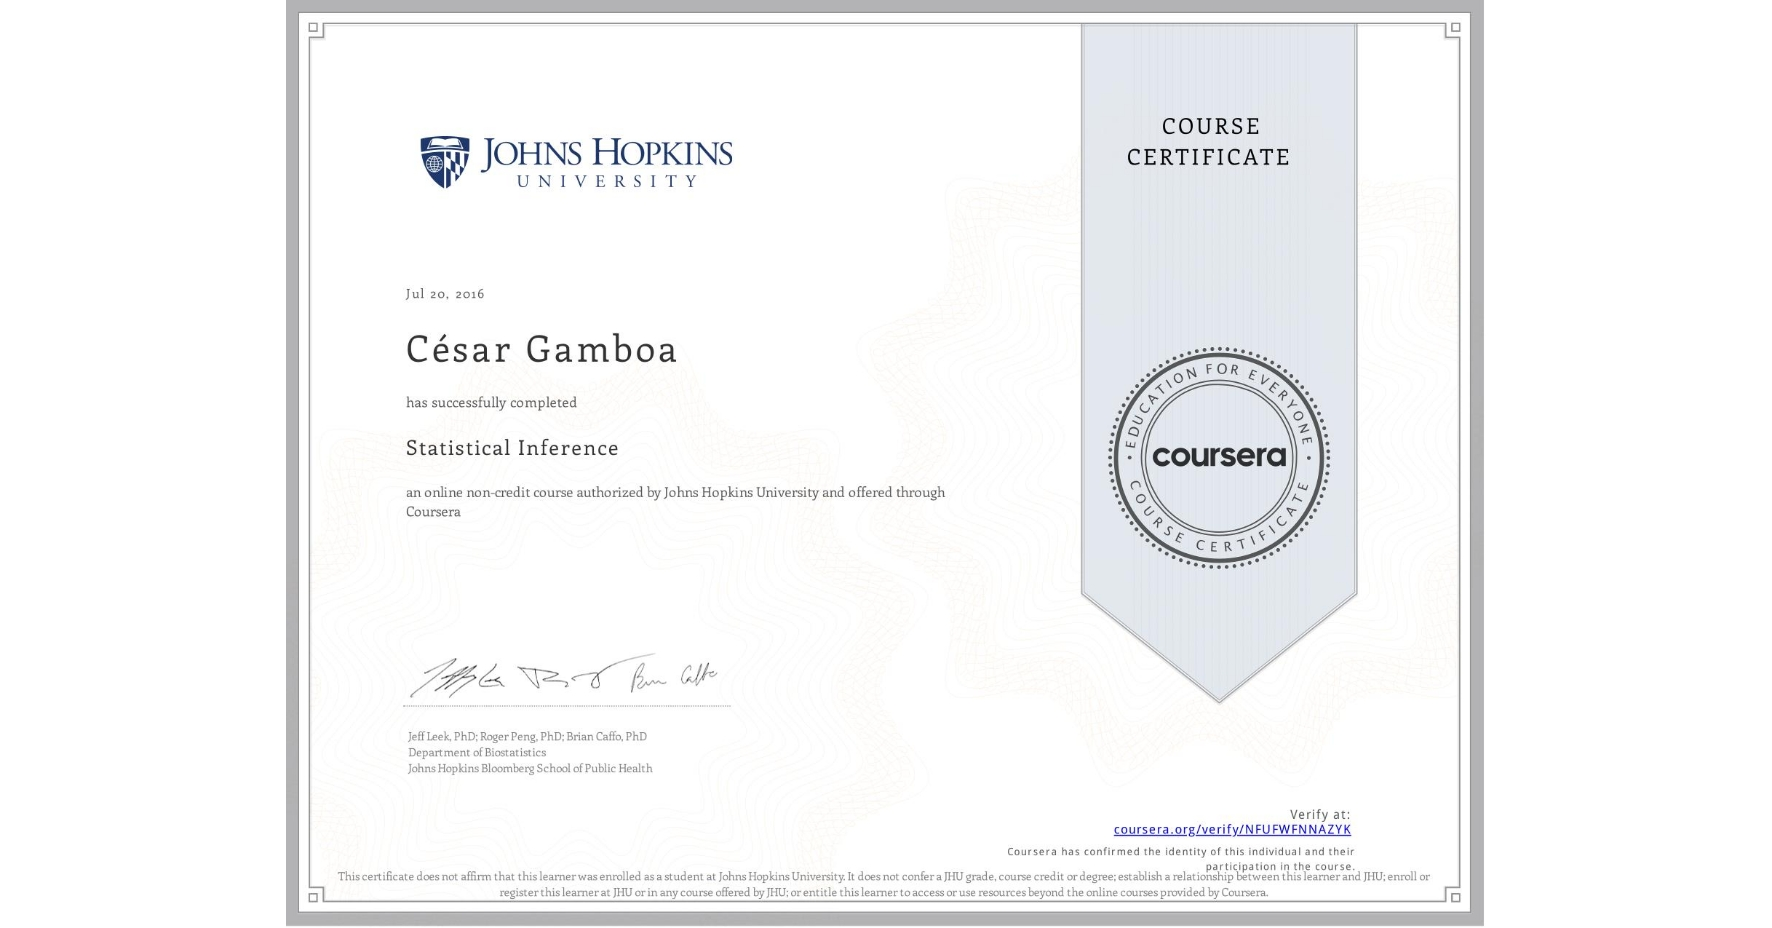 View certificate for César Gamboa, Statistical Inference, an online non-credit course authorized by Johns Hopkins University and offered through Coursera